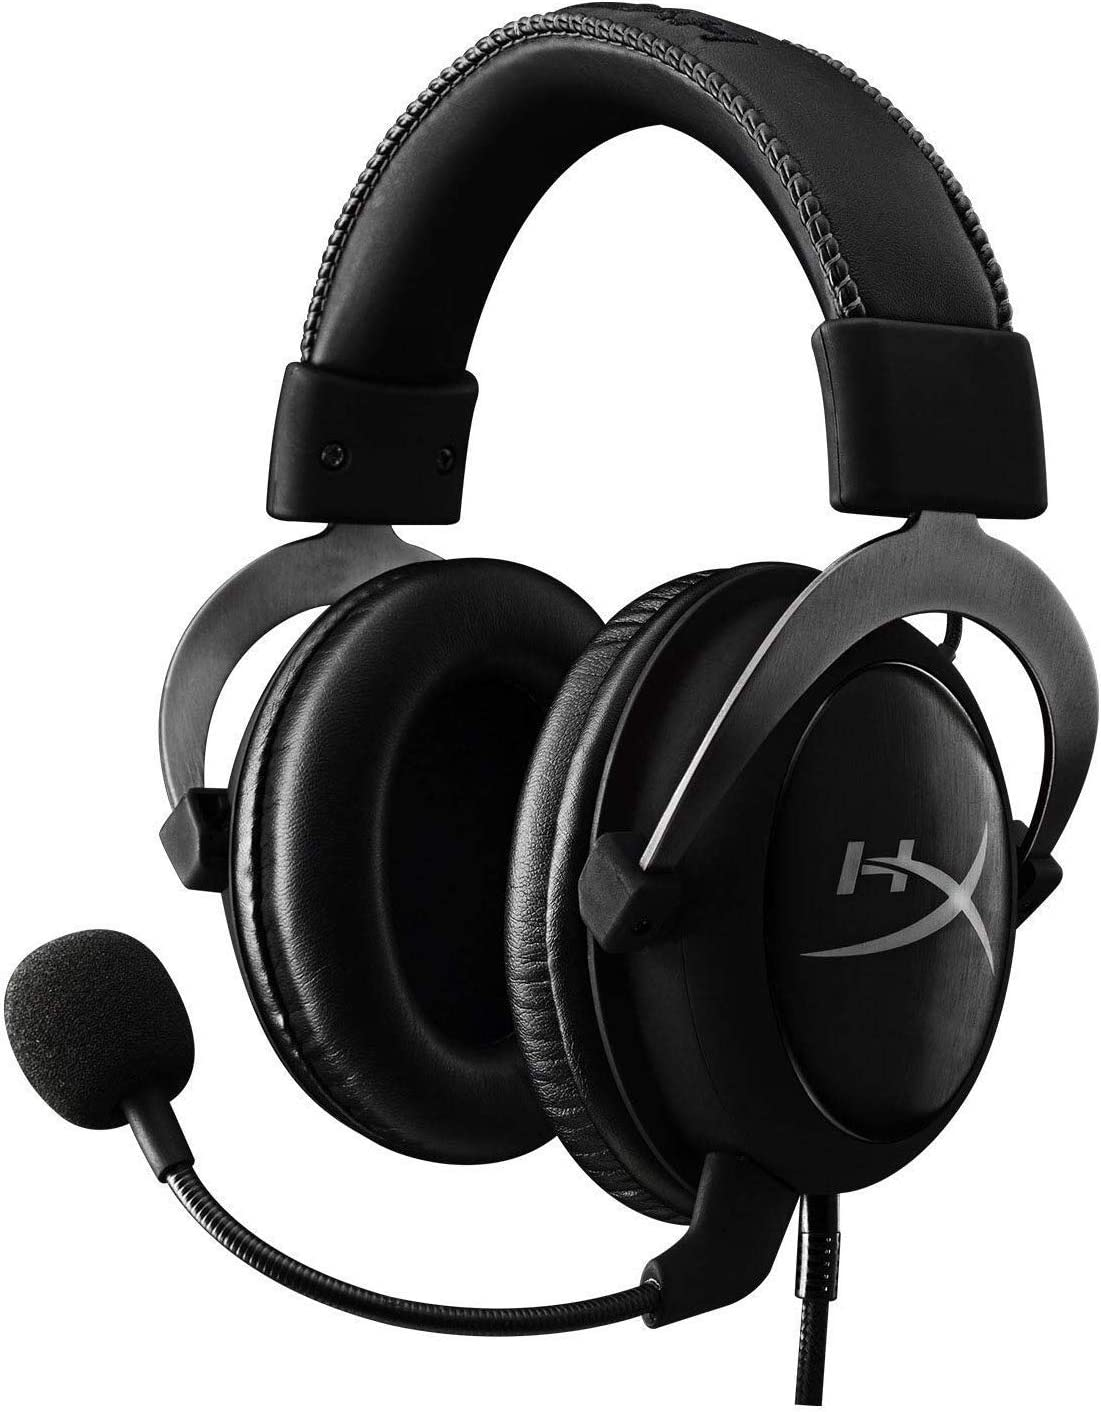 HyperX Cloud II Gaming Headset - 7.1 Surround Sound - Memory Foam Ear Pads - Durable Aluminum Frame - Works with PC, PS4, PS4 PRO, Xbox One, Xbox One ...